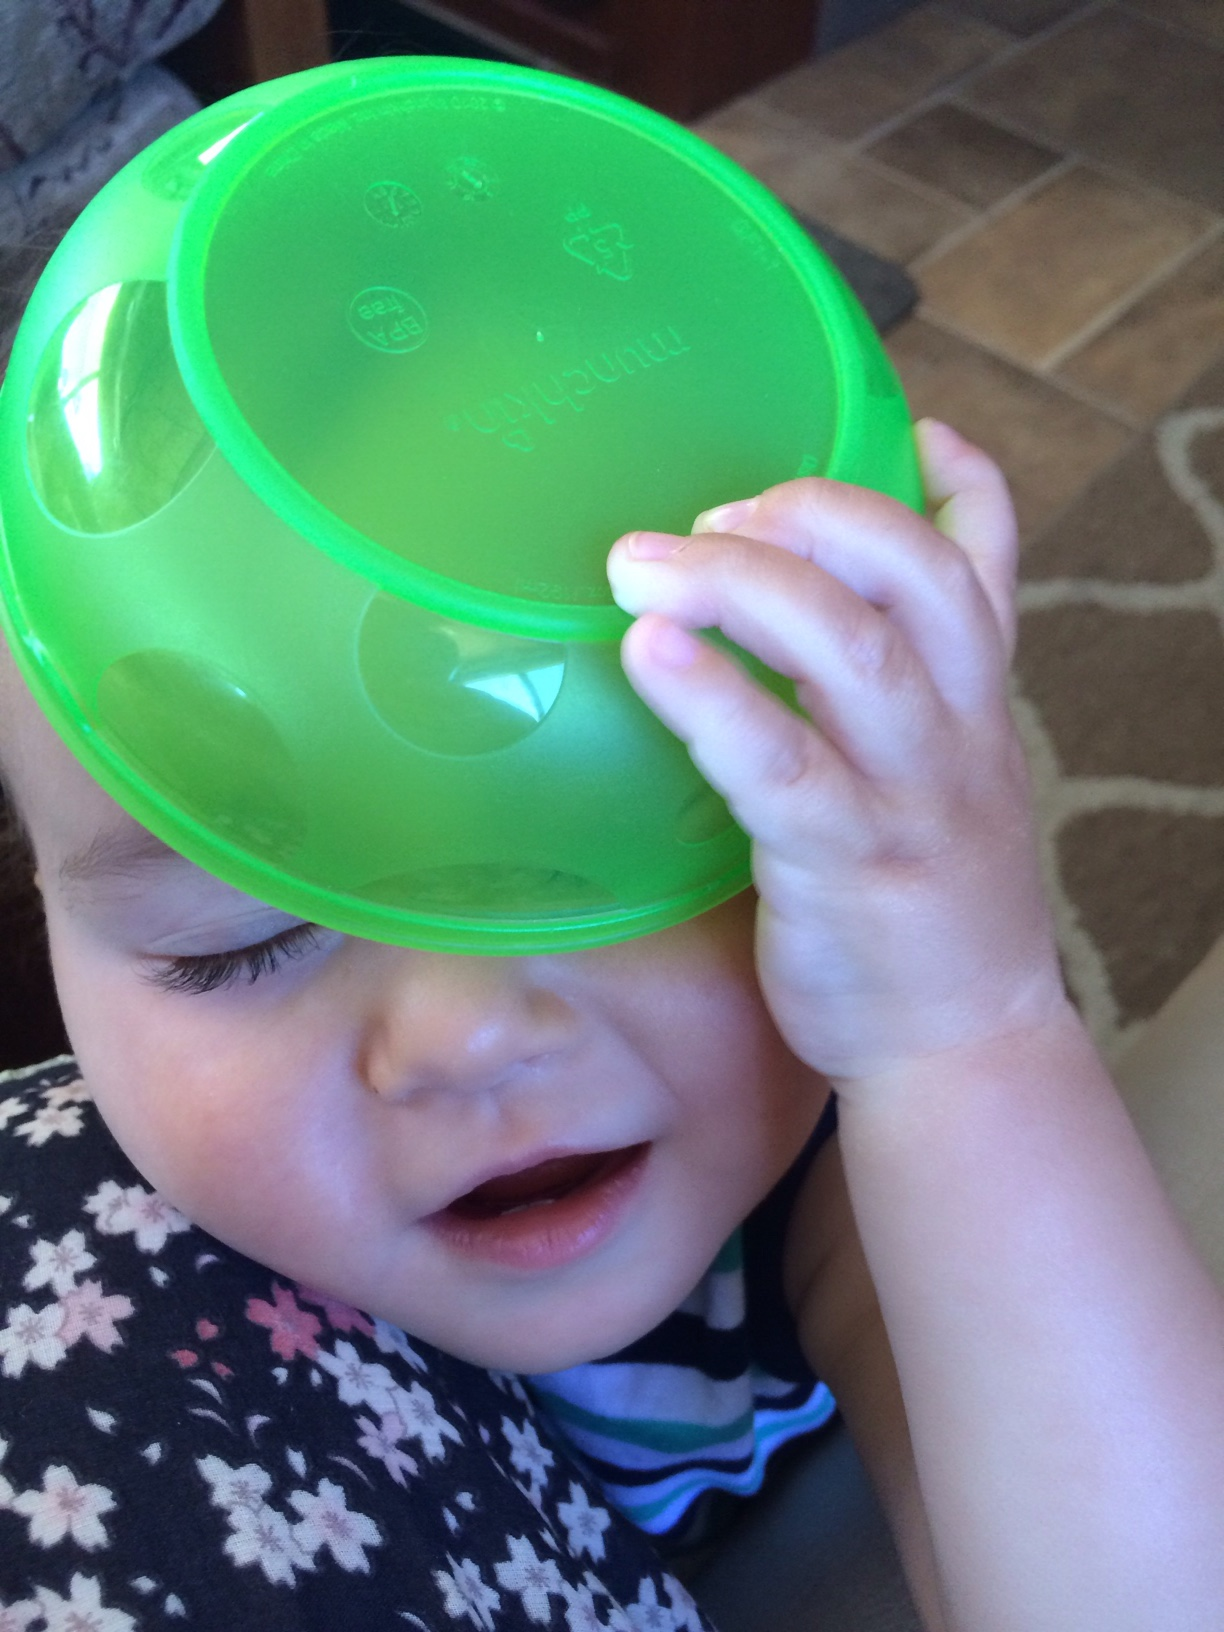 Baby boy O with green bowl on head